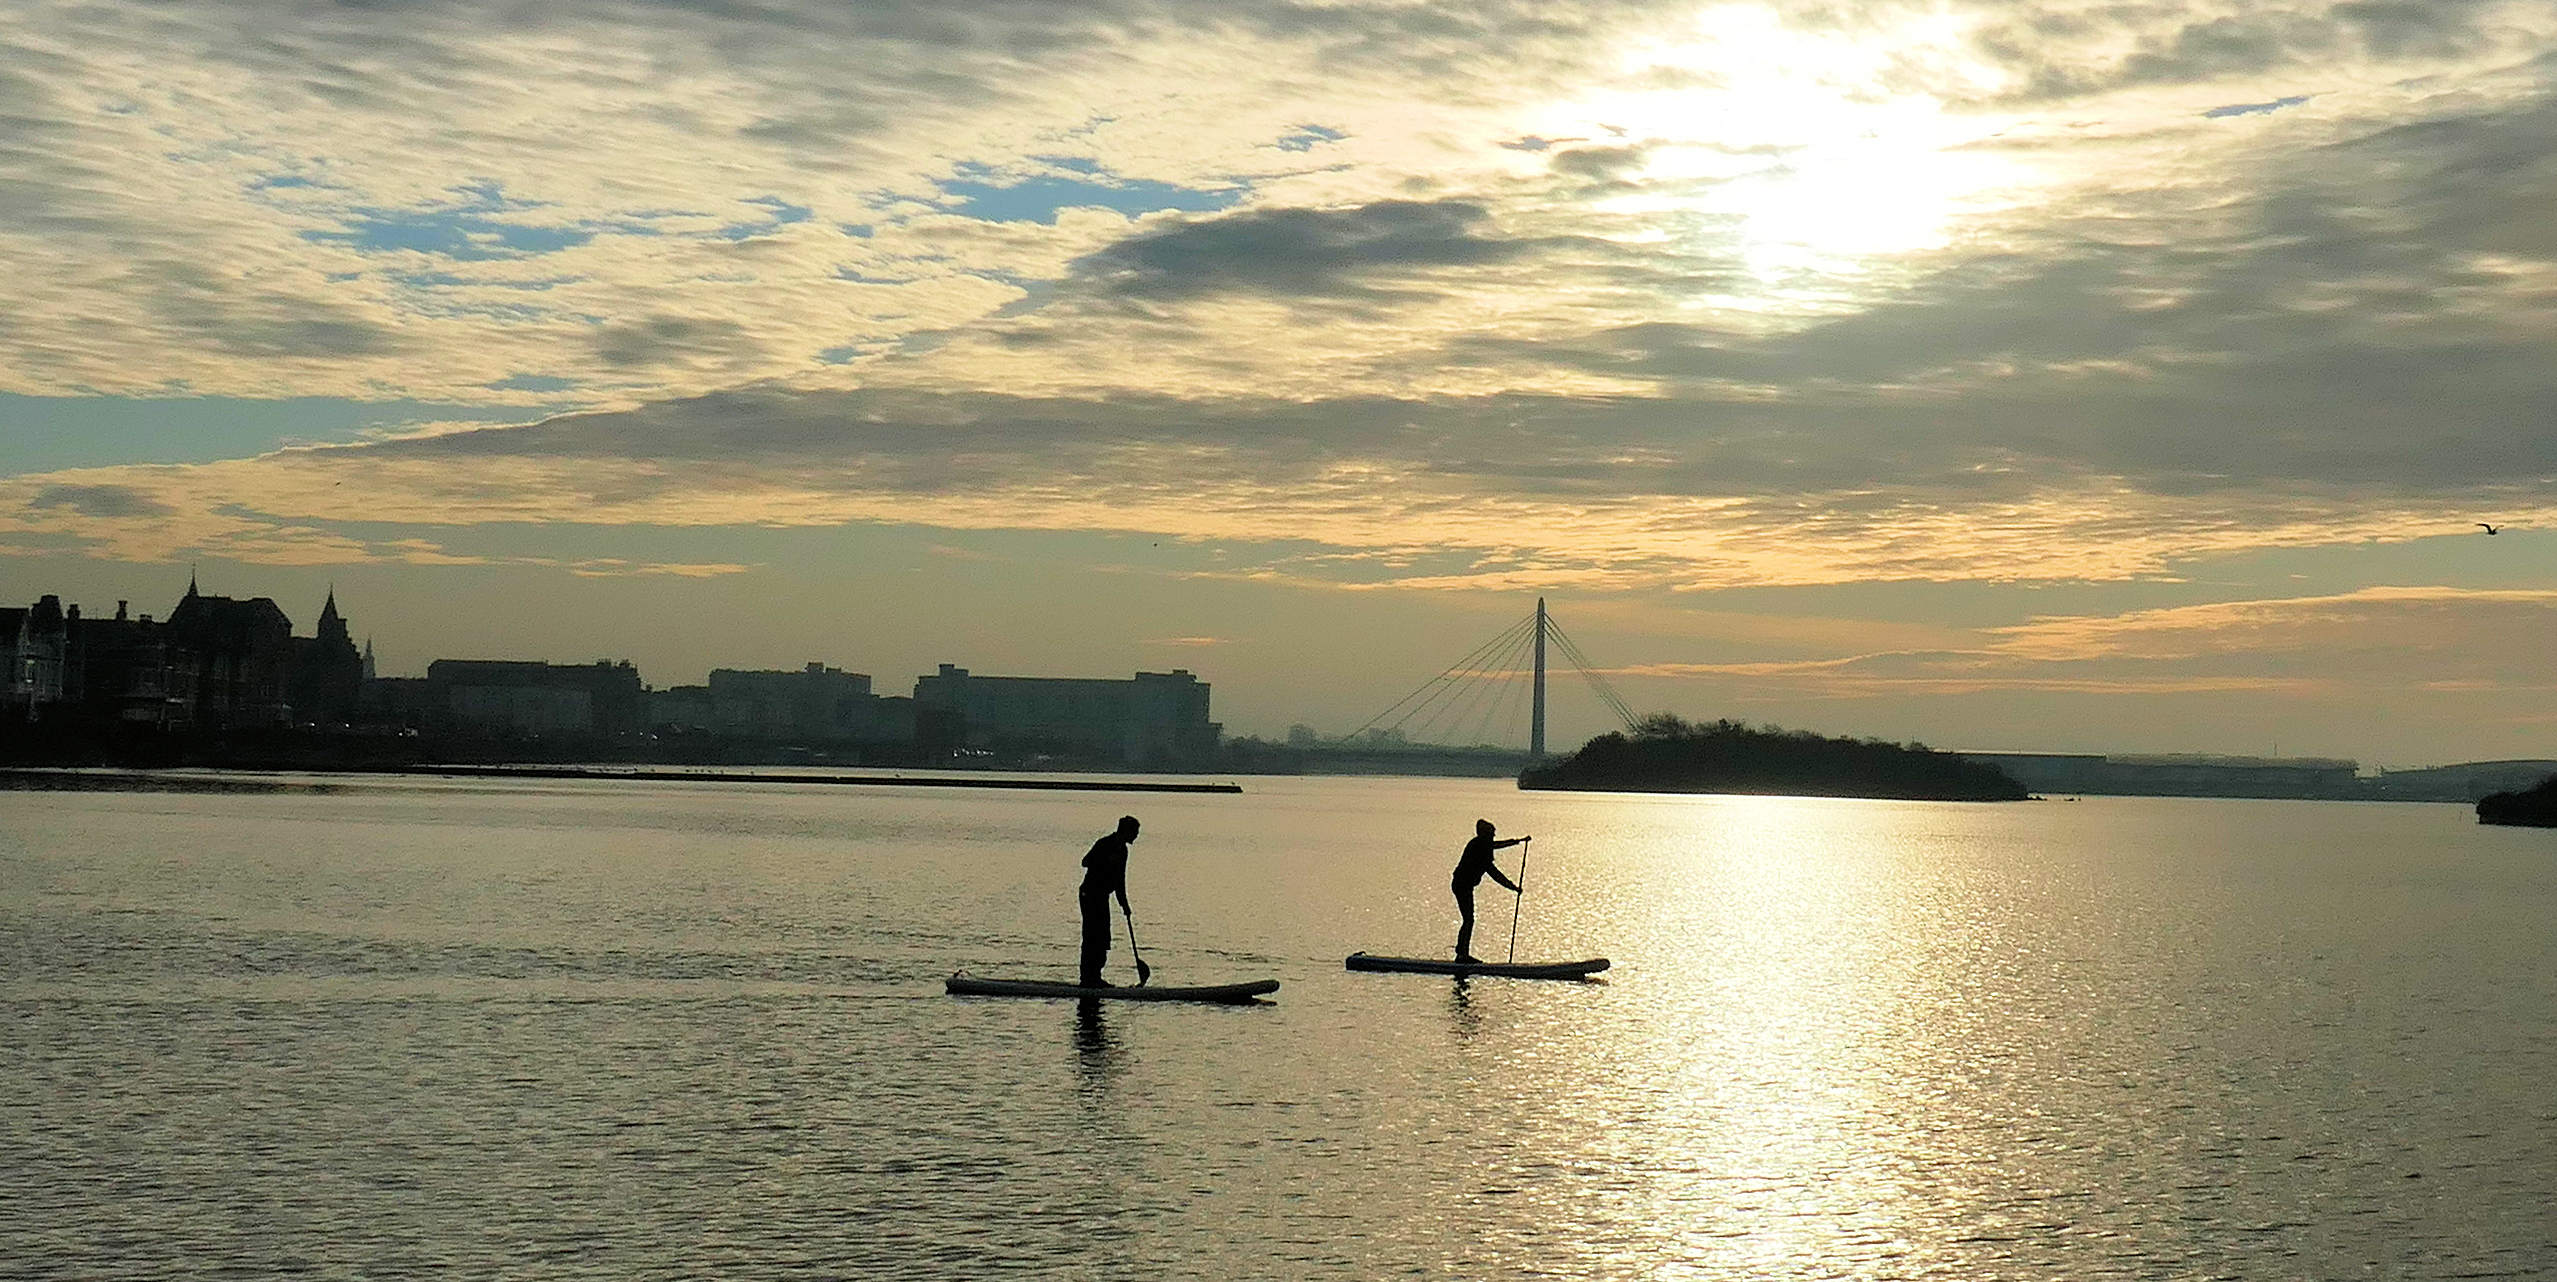 southport paddle boards